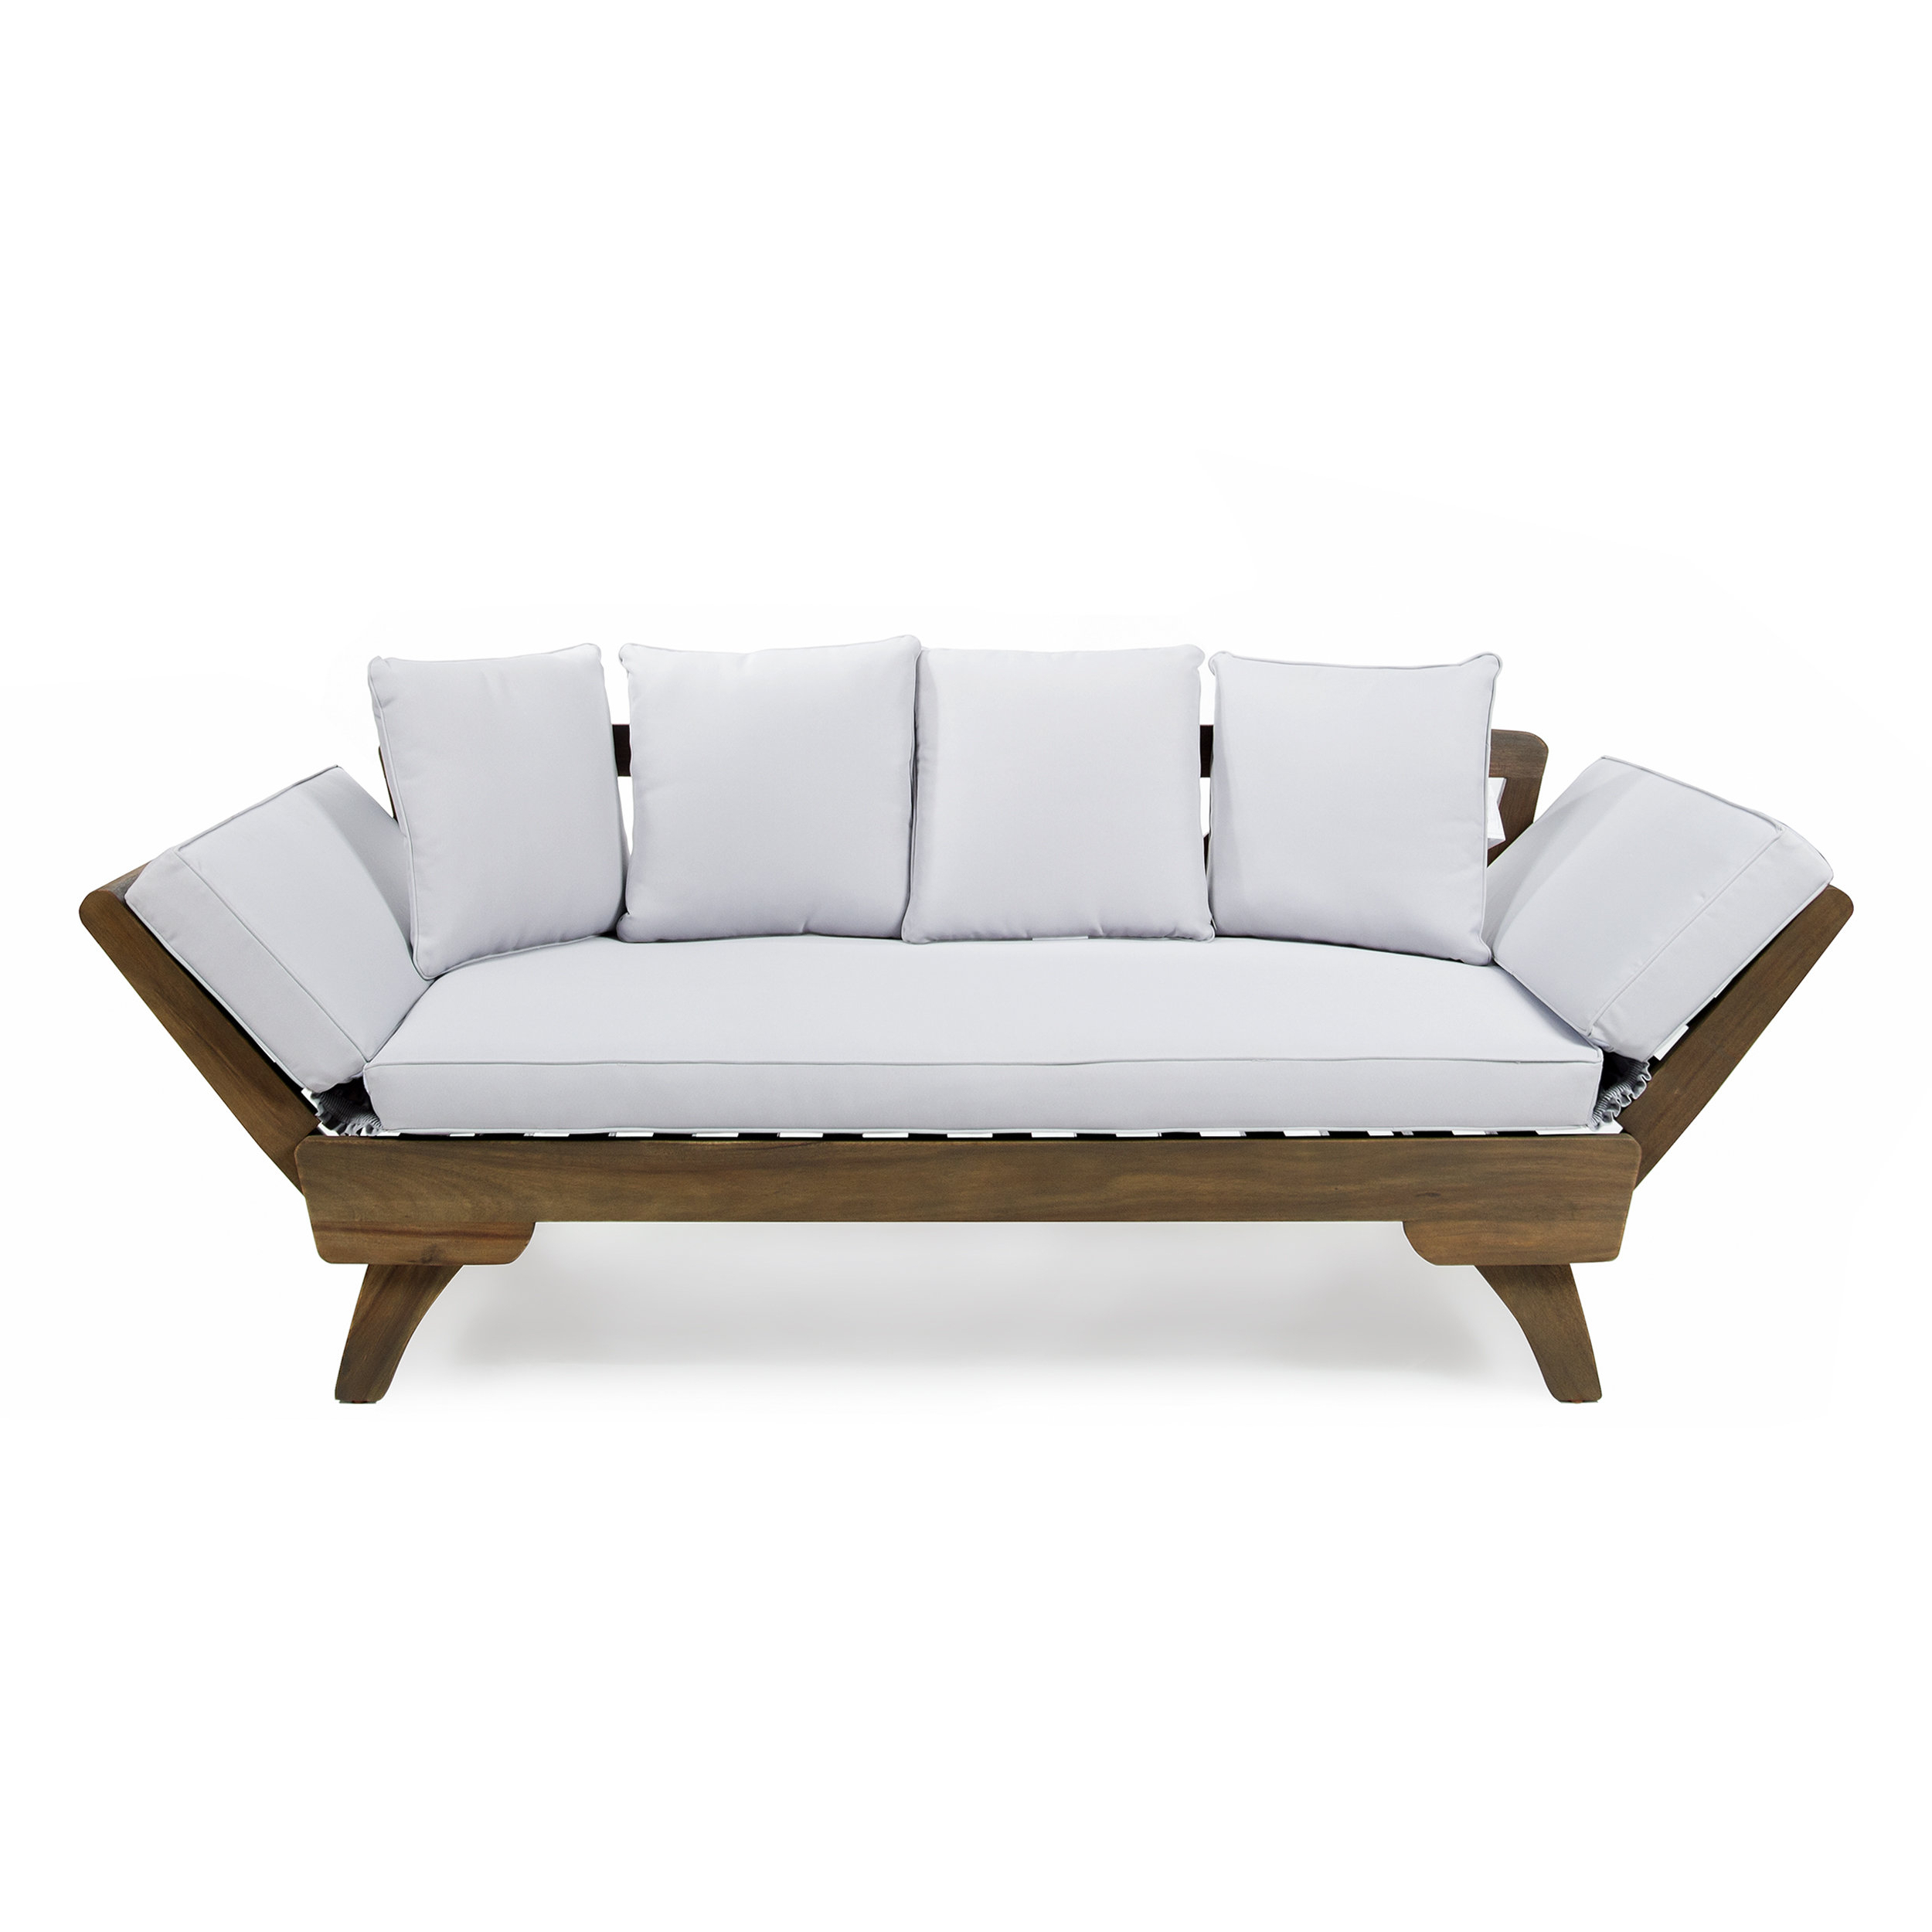 Patio Daybeds With Cushions Intended For Preferred Ellanti Teak Patio Daybed With Cushions (View 4 of 20)